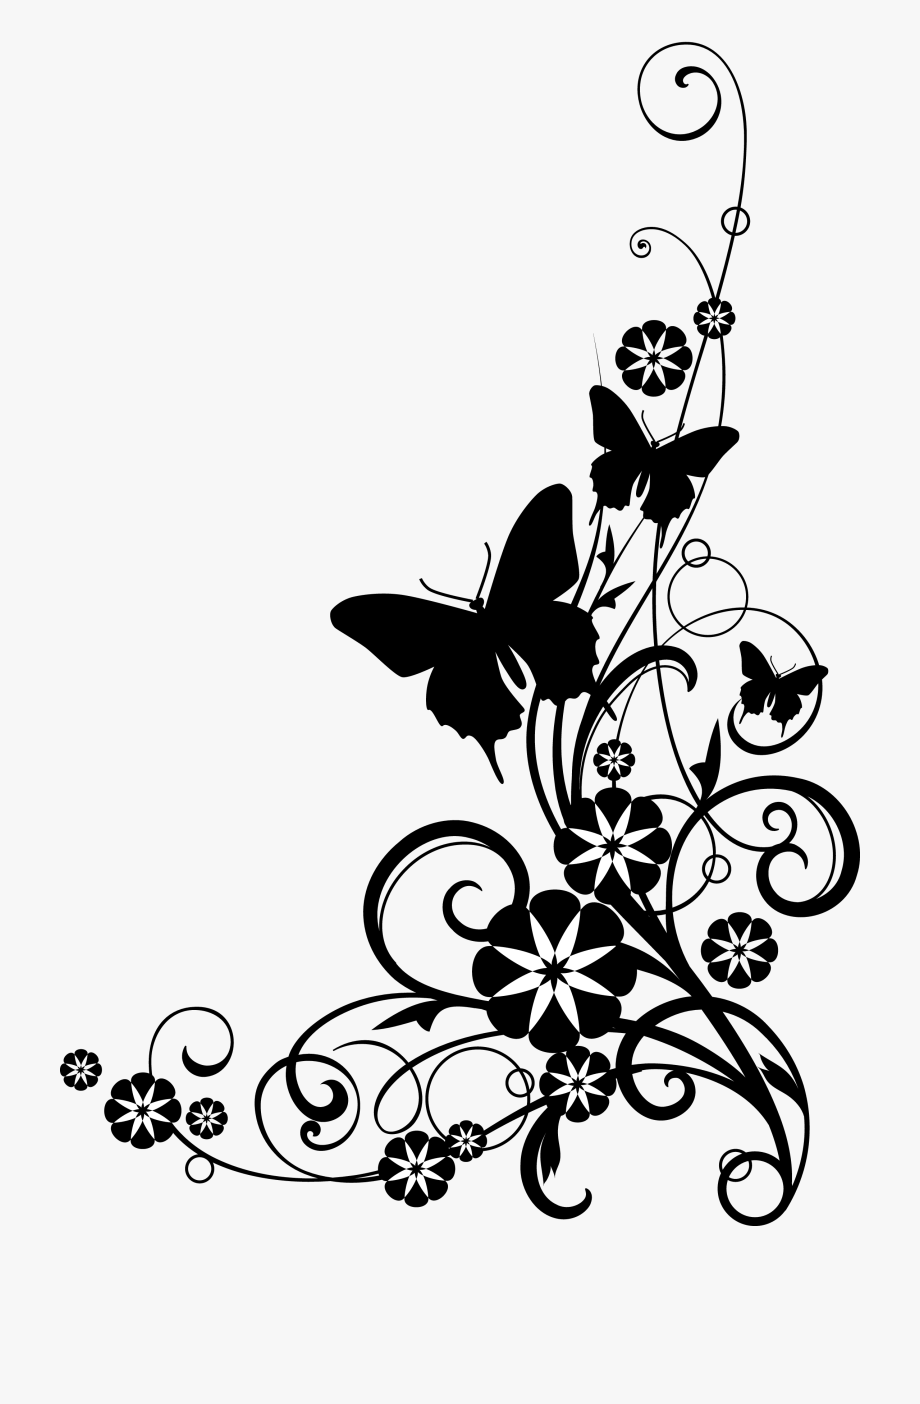 Rose and butterfly clipart black and white library Rose Black And White Black And White Rose Clipart - Flowers ... library